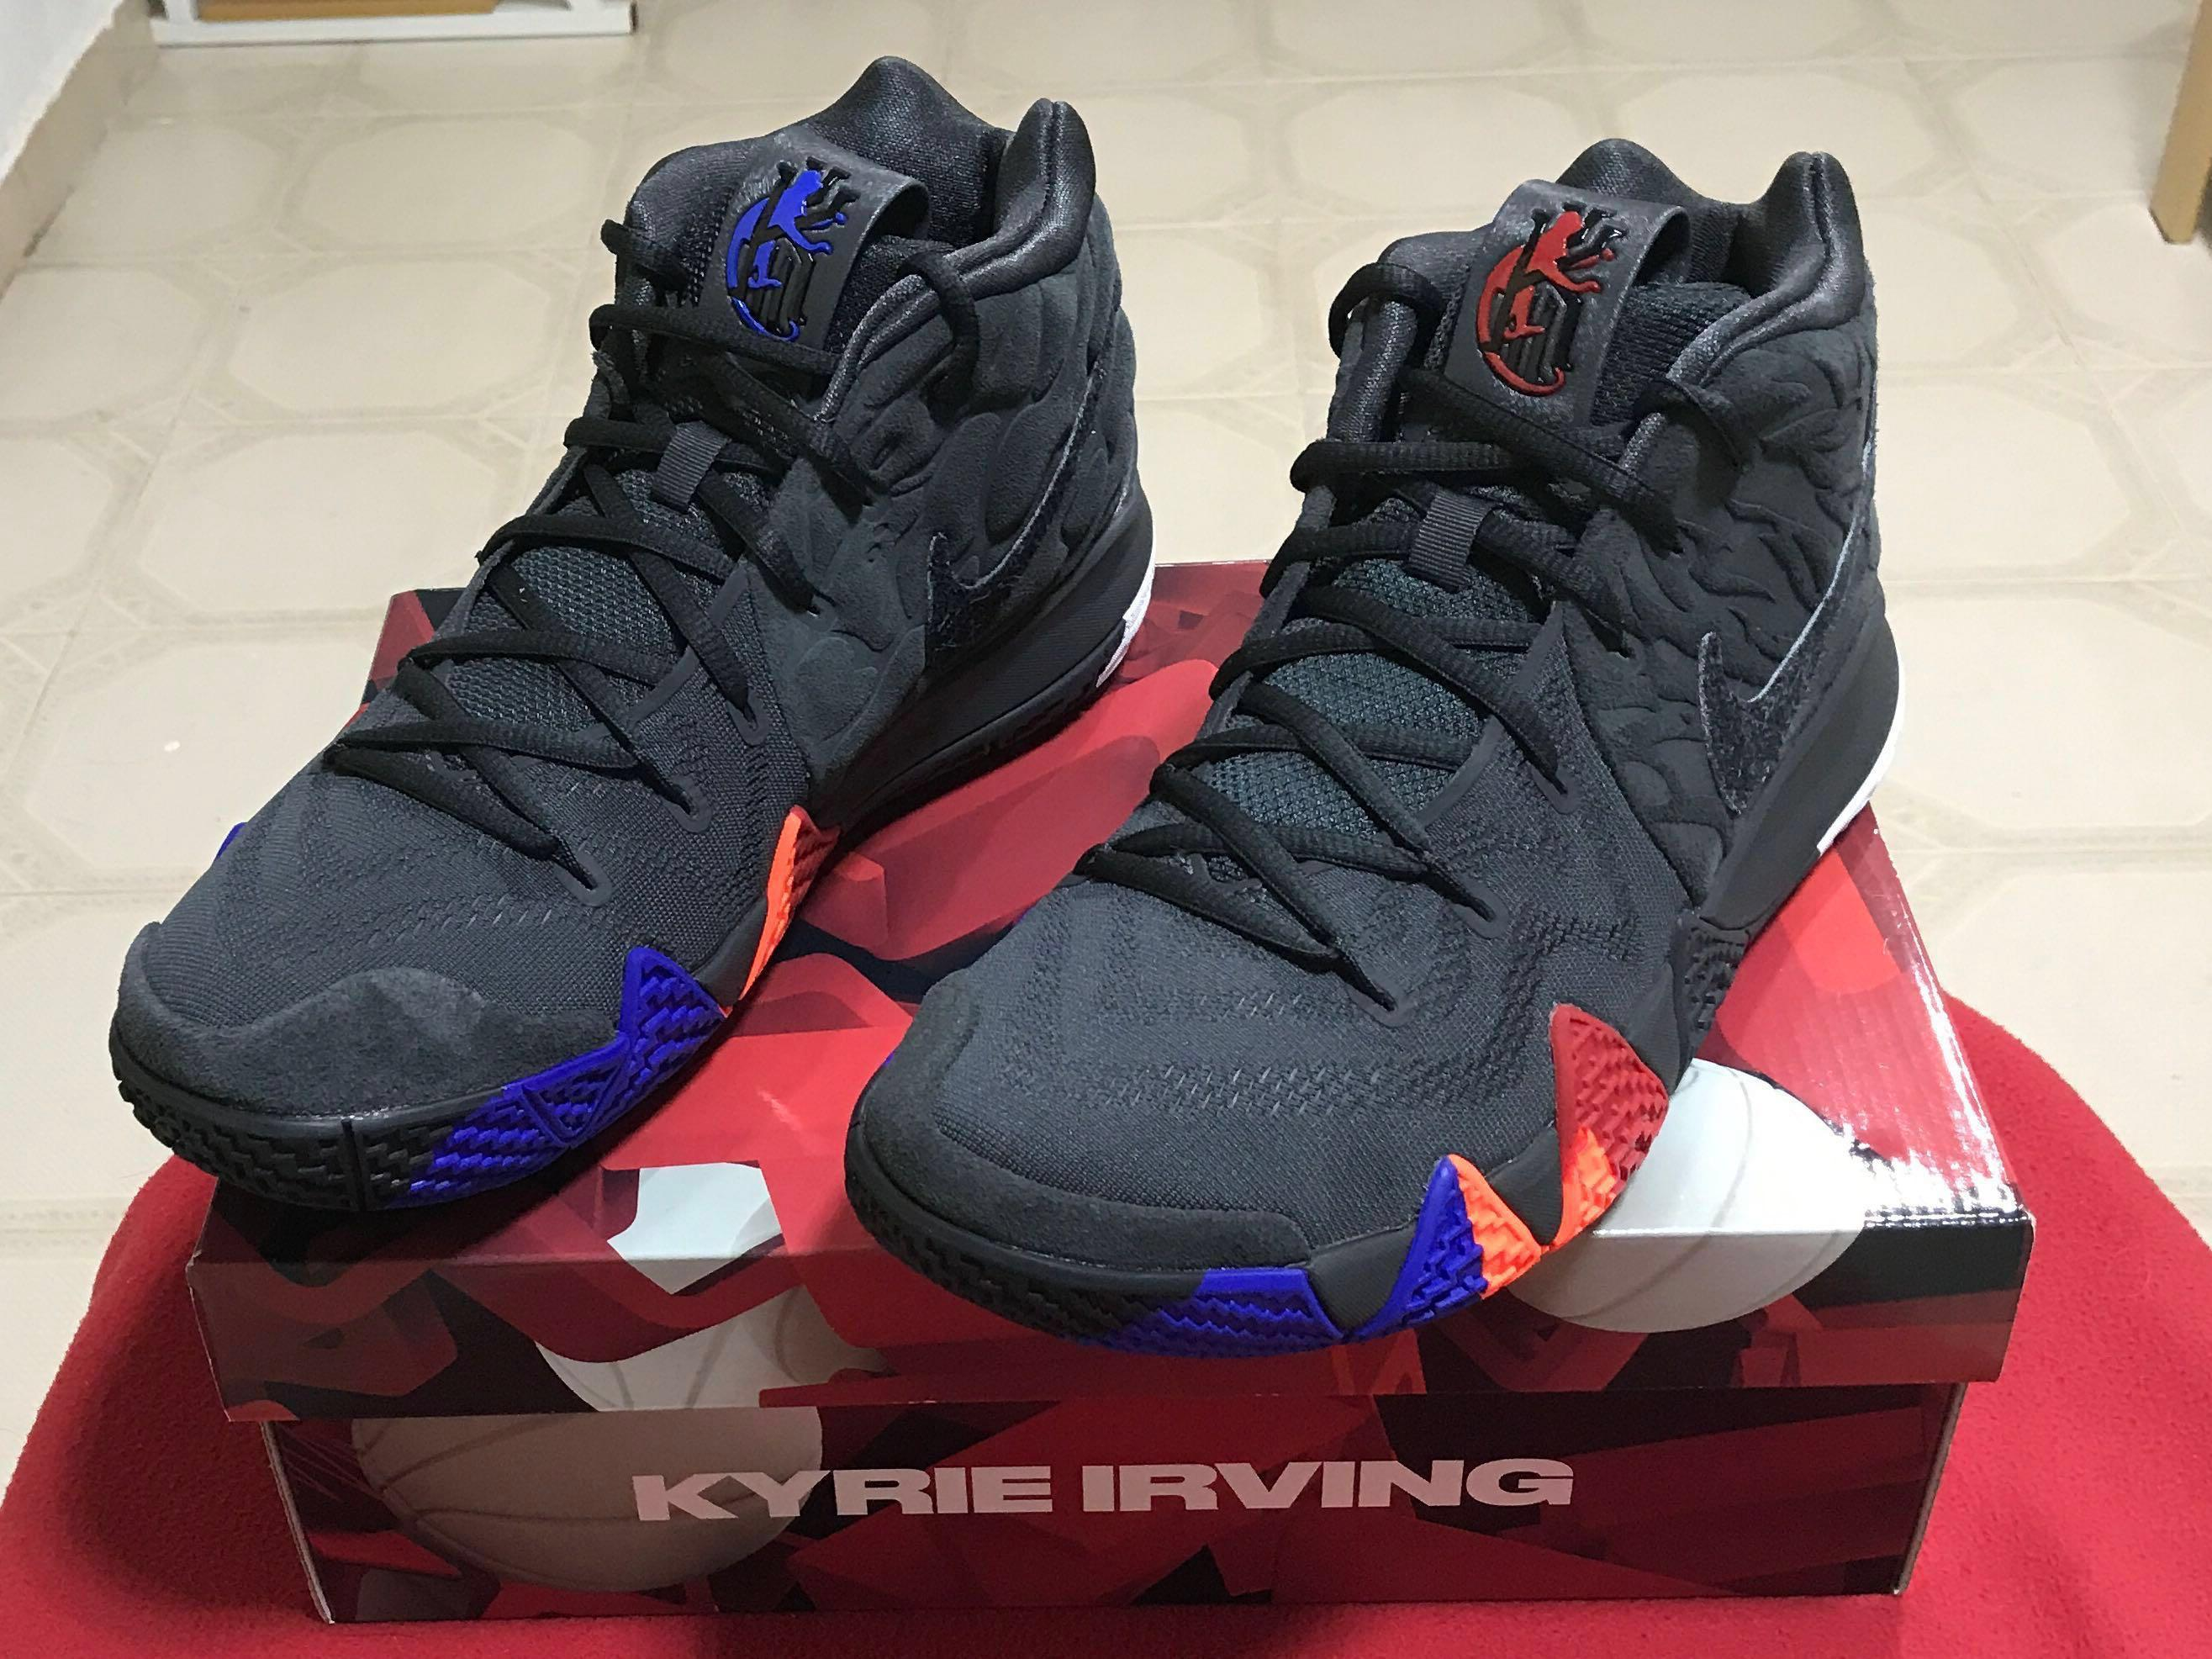 uk availability 615cb 115f5 Kyrie 4 Year of the Monkey, Sports, Sports Apparel on Carousell